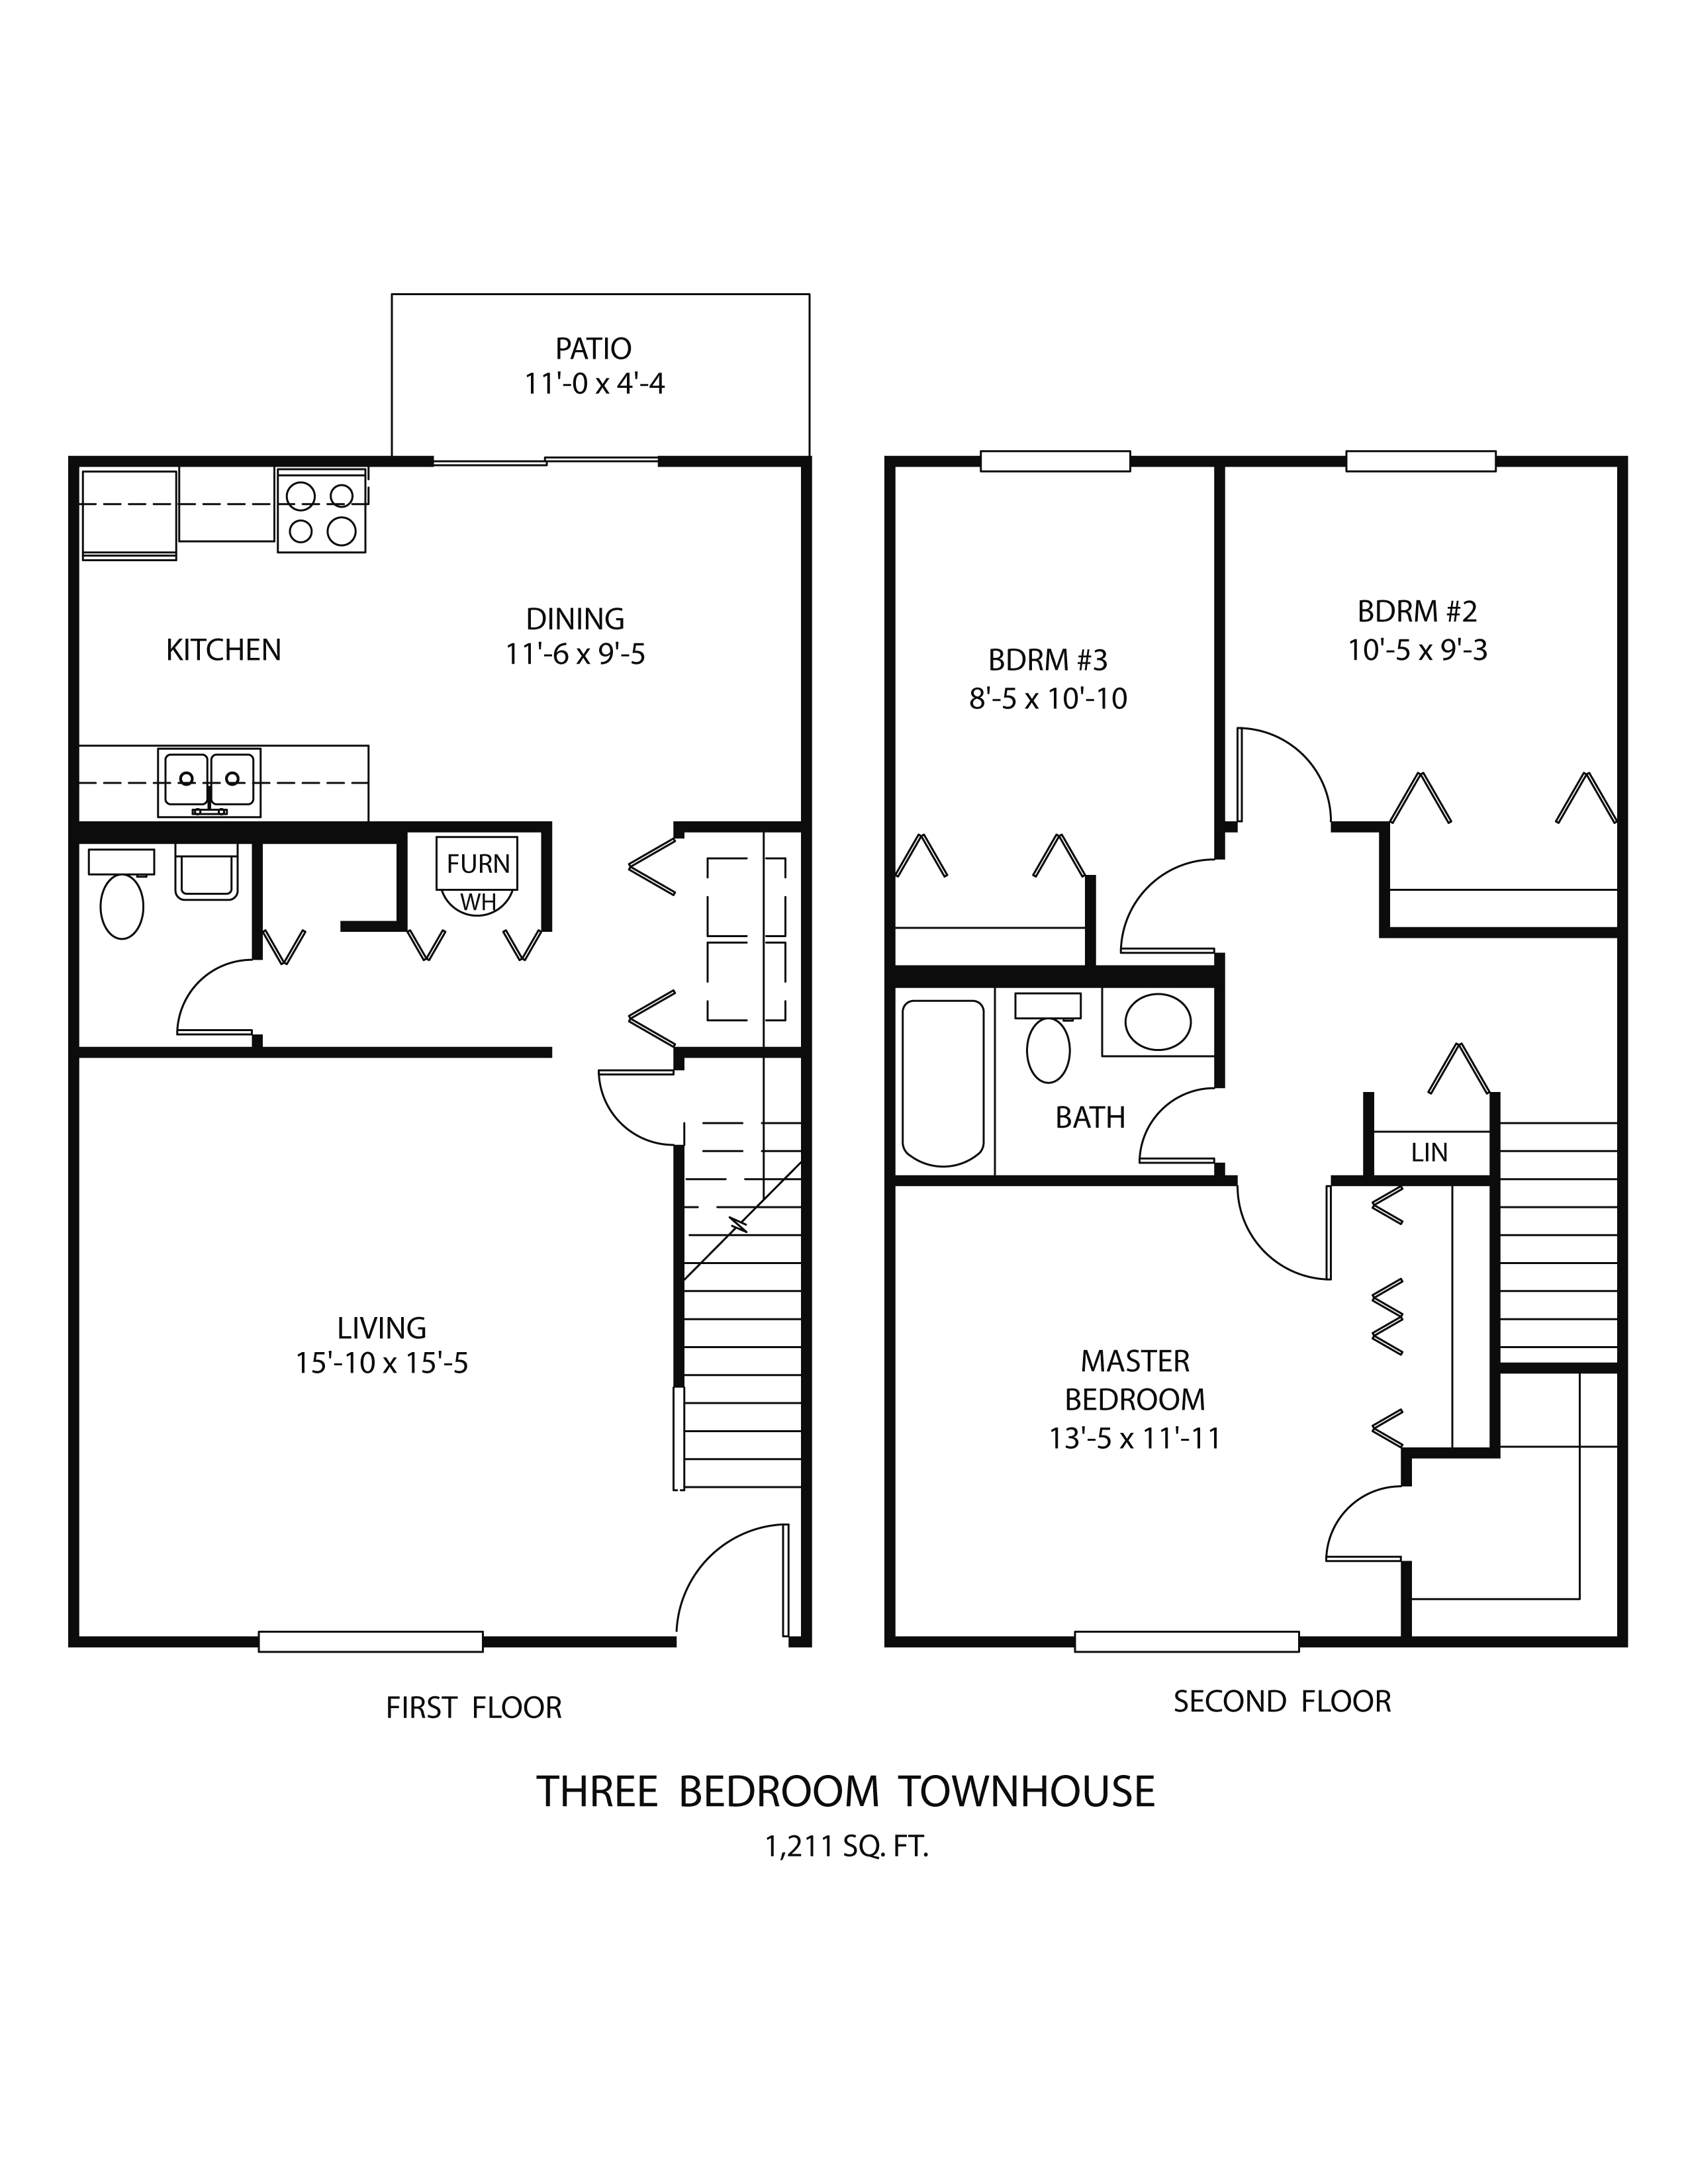 Income Based Apartments Marion Indiana